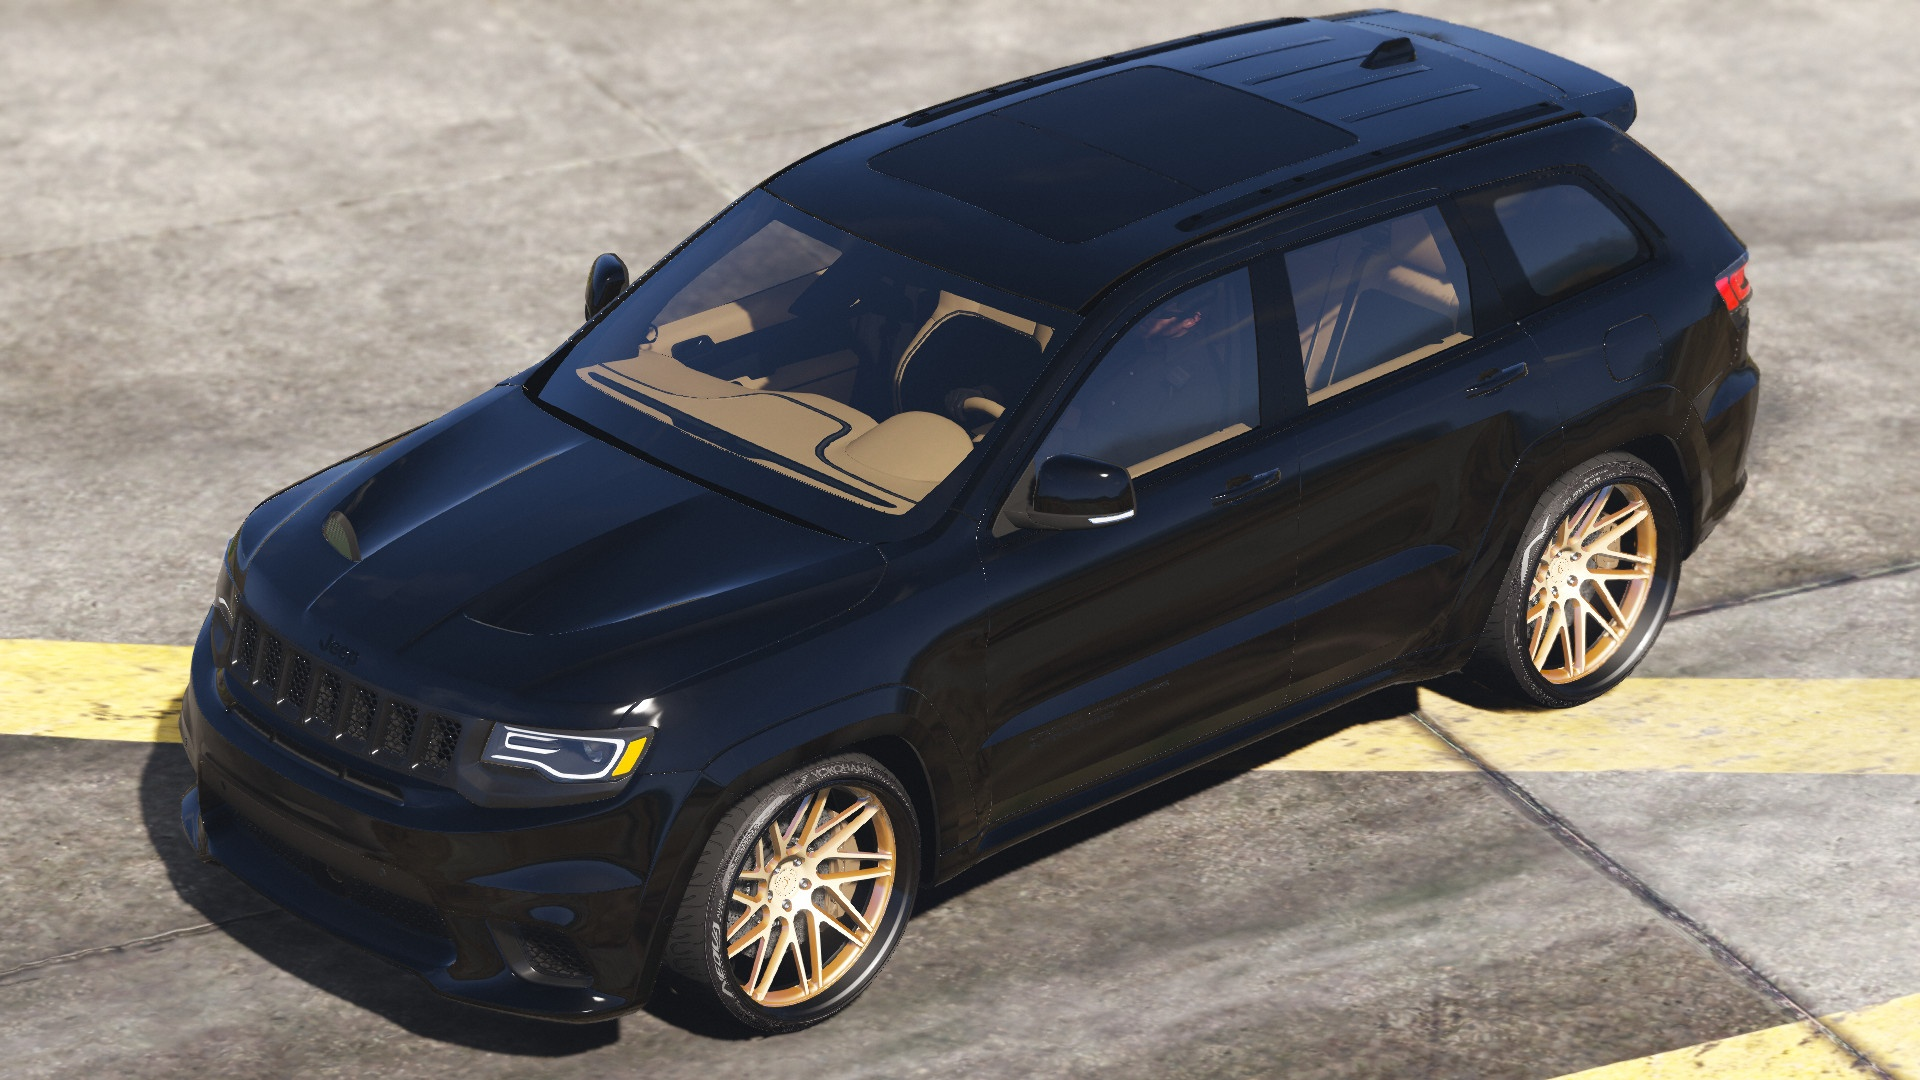 Download TrackHawk Jeep Grand Cherokee SRT8  Mod for GTA V, , Gaming News, Gaming Update, gta Mods, gta V, gta V Mods, Mod, SGCArena